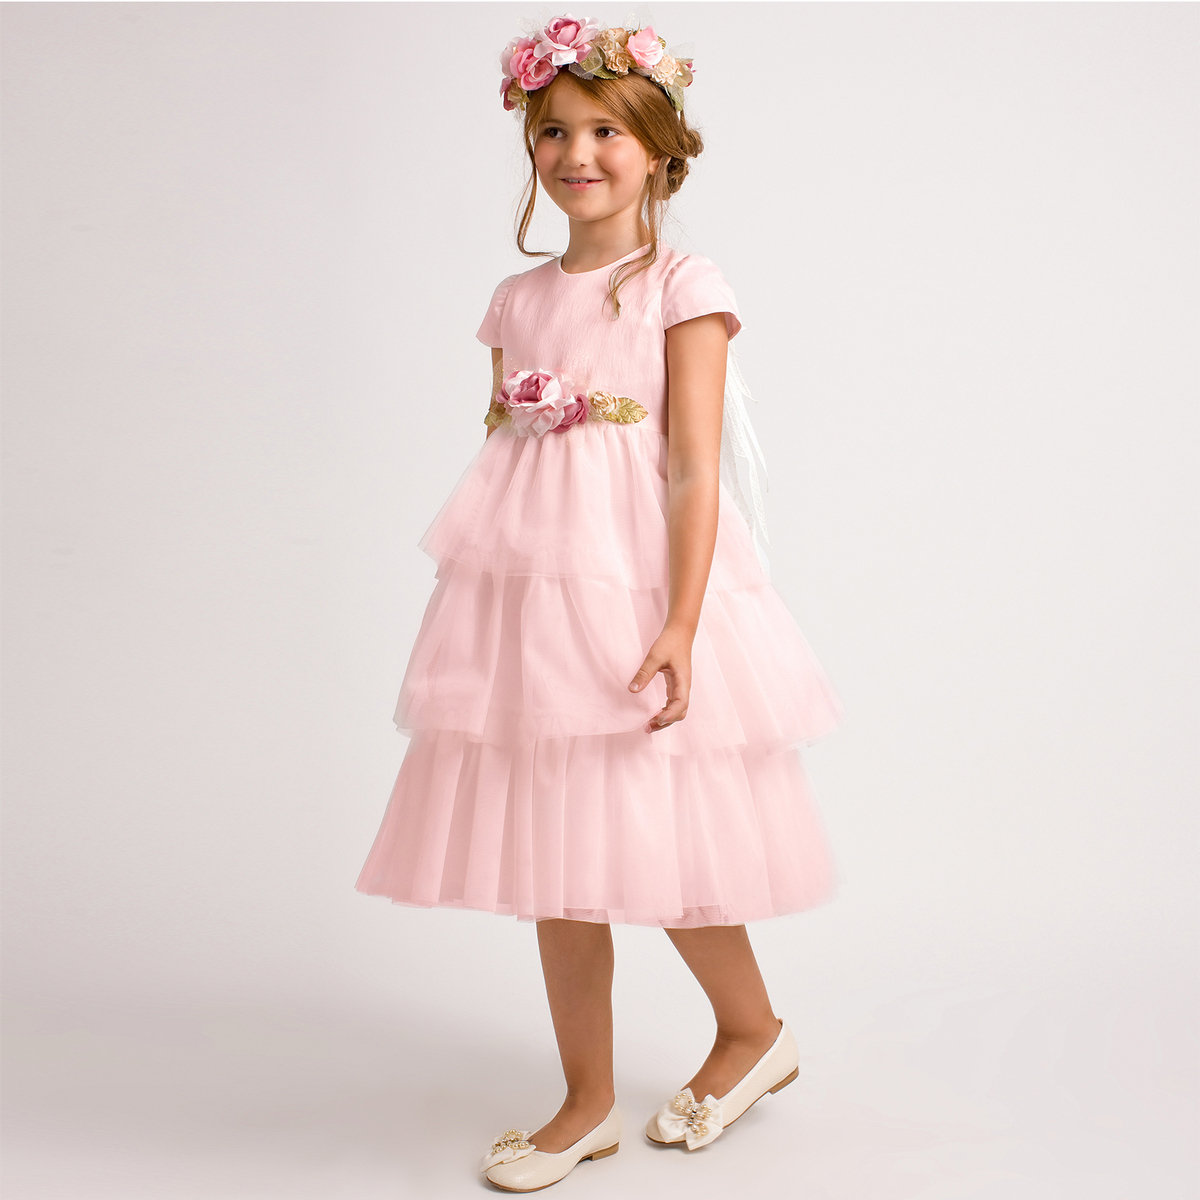 Pink Tulle Dress with Wings | Graci Sale | Angelibebe